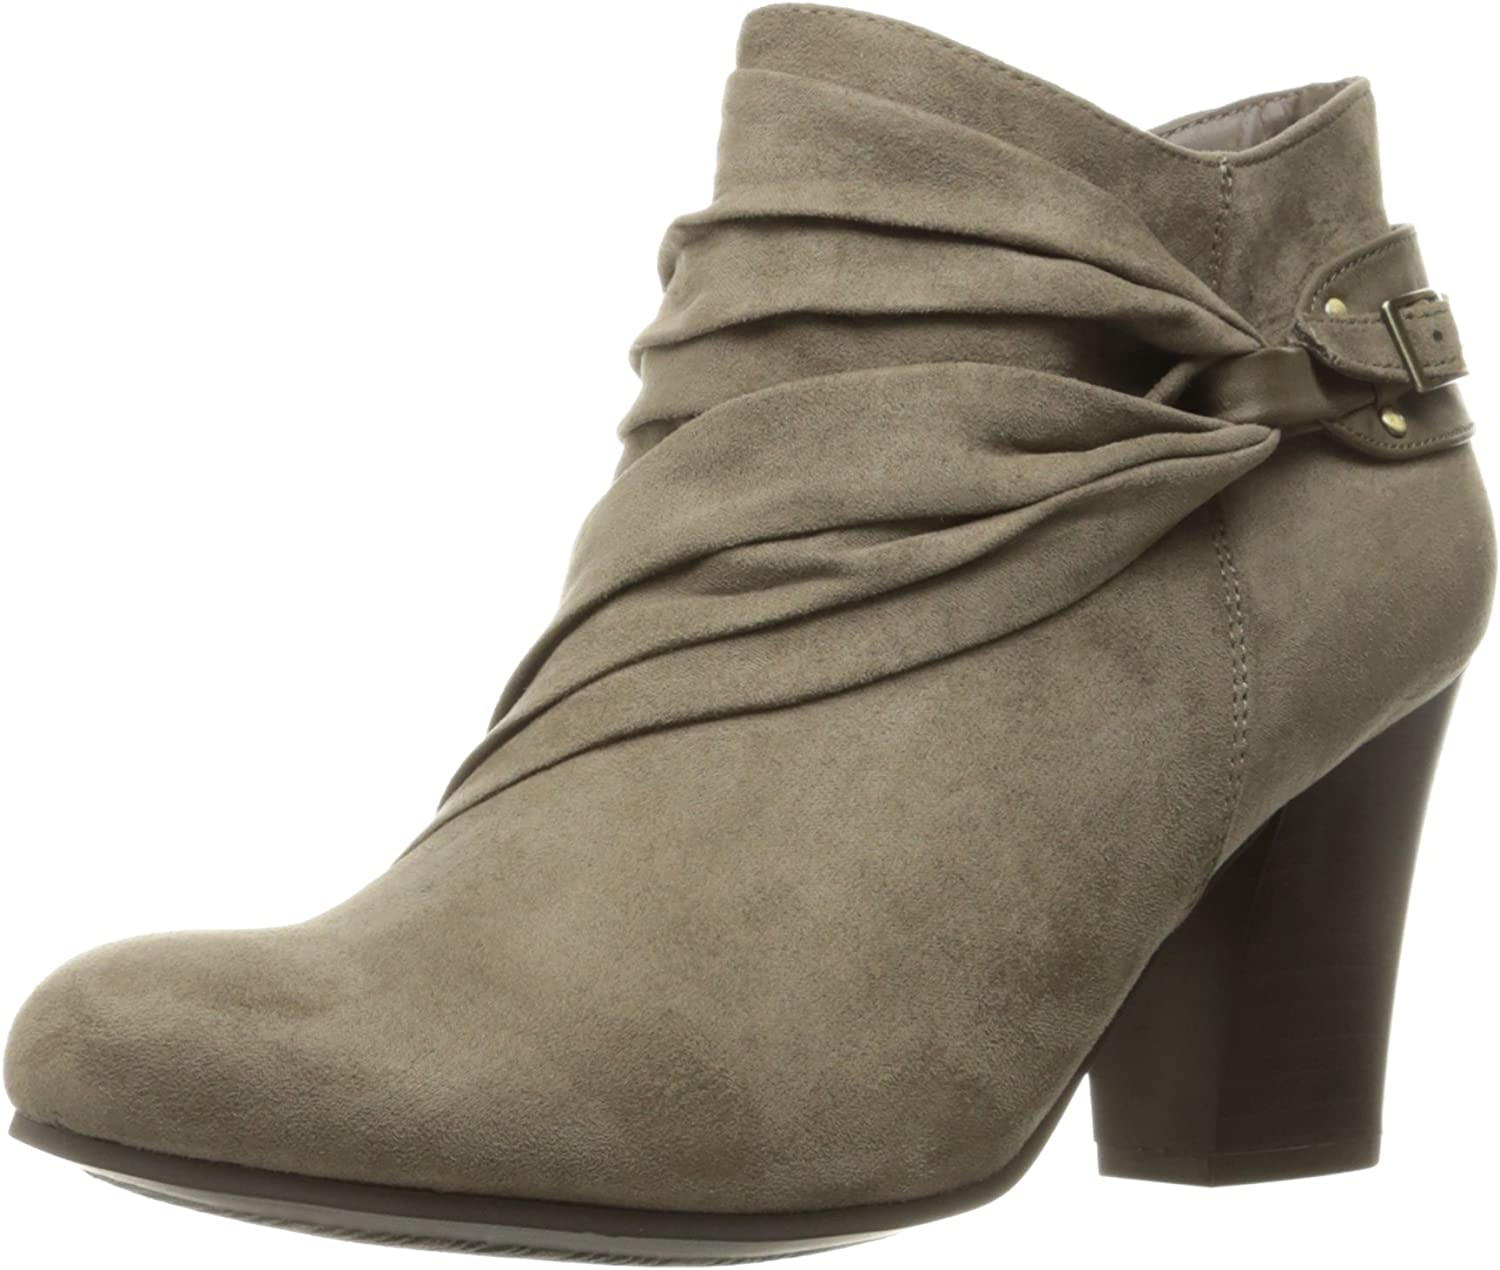 Andrew Geller Womens Ag Glorify Ankle Bootie